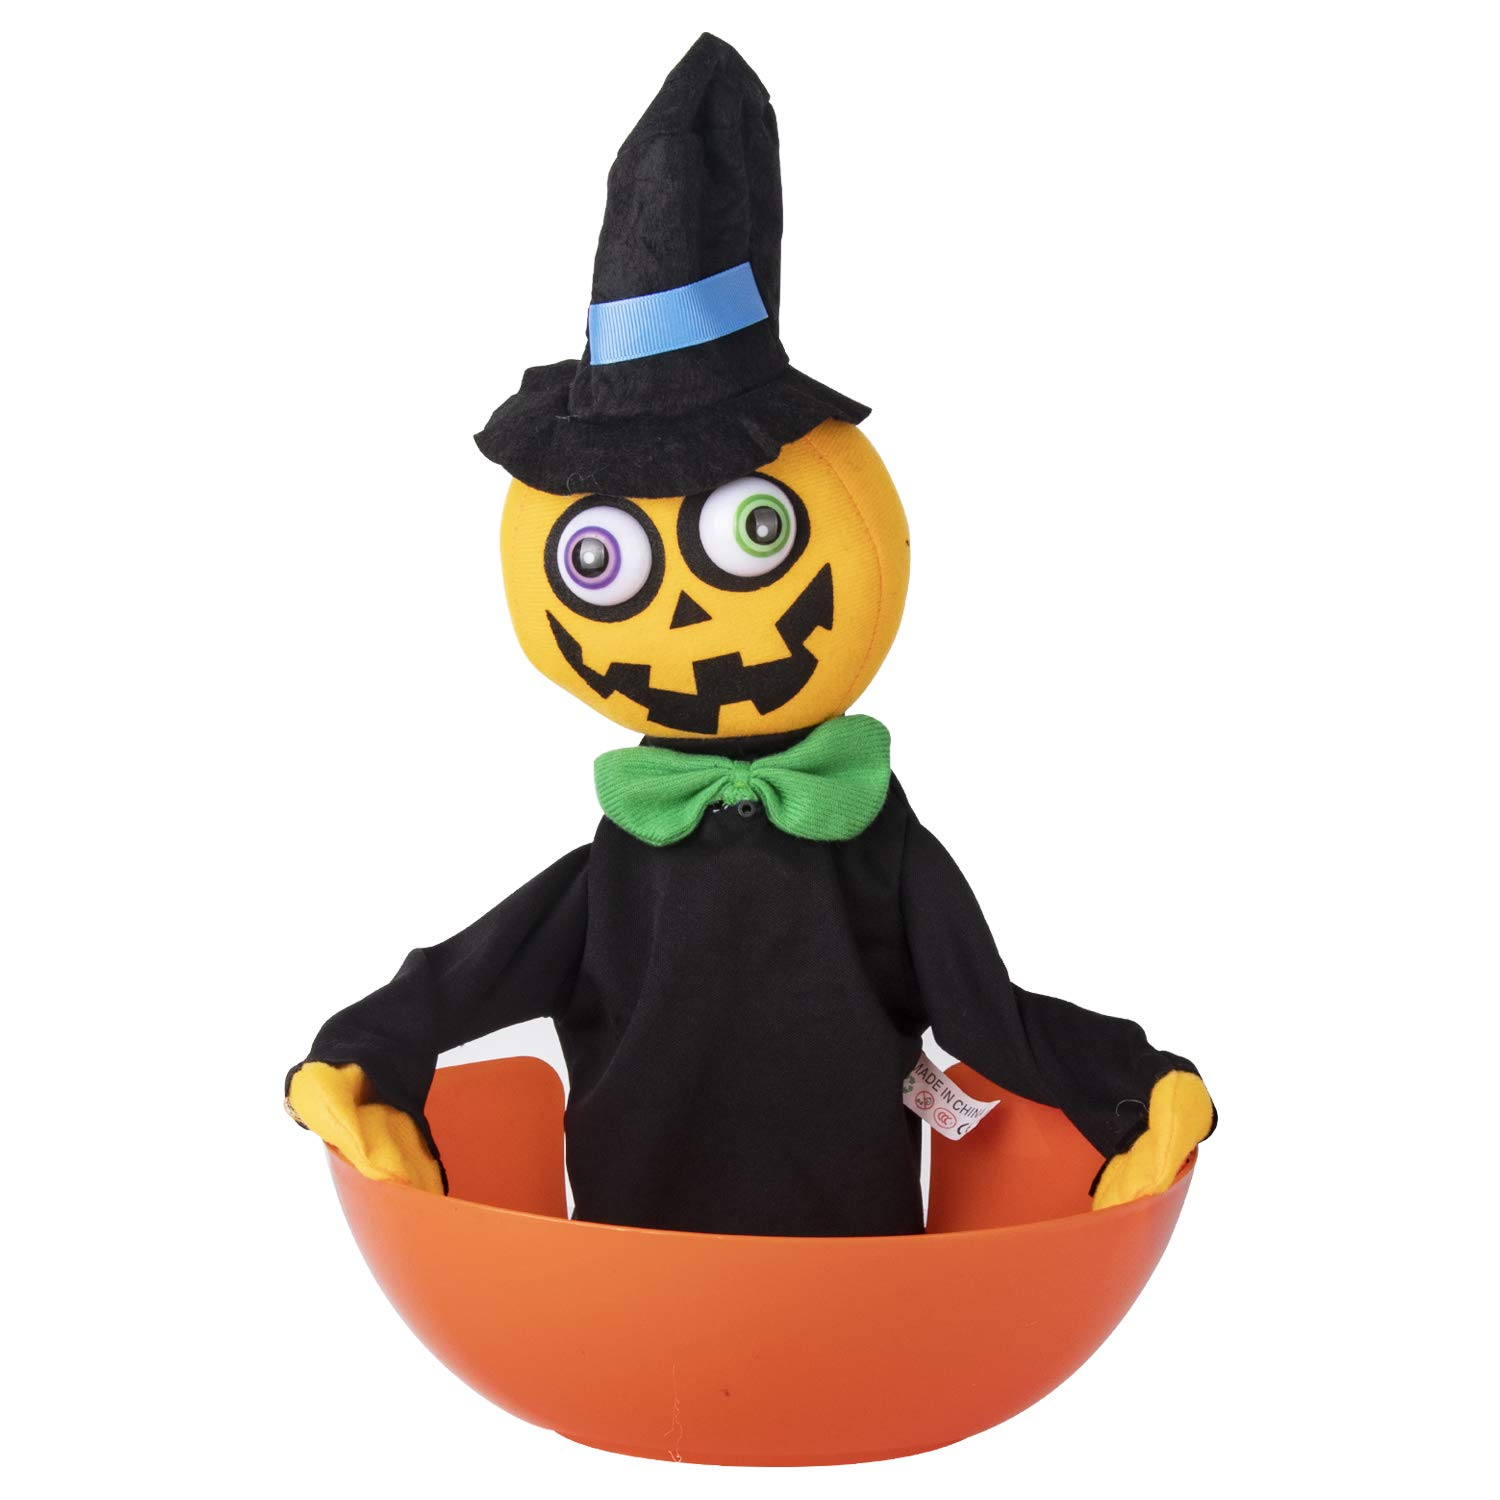 KI Store Halloween Candy Bowl Motion Activated Animated Talking Candy Bowls Halloween Decorations for Treat or Trick (Pumpkin)